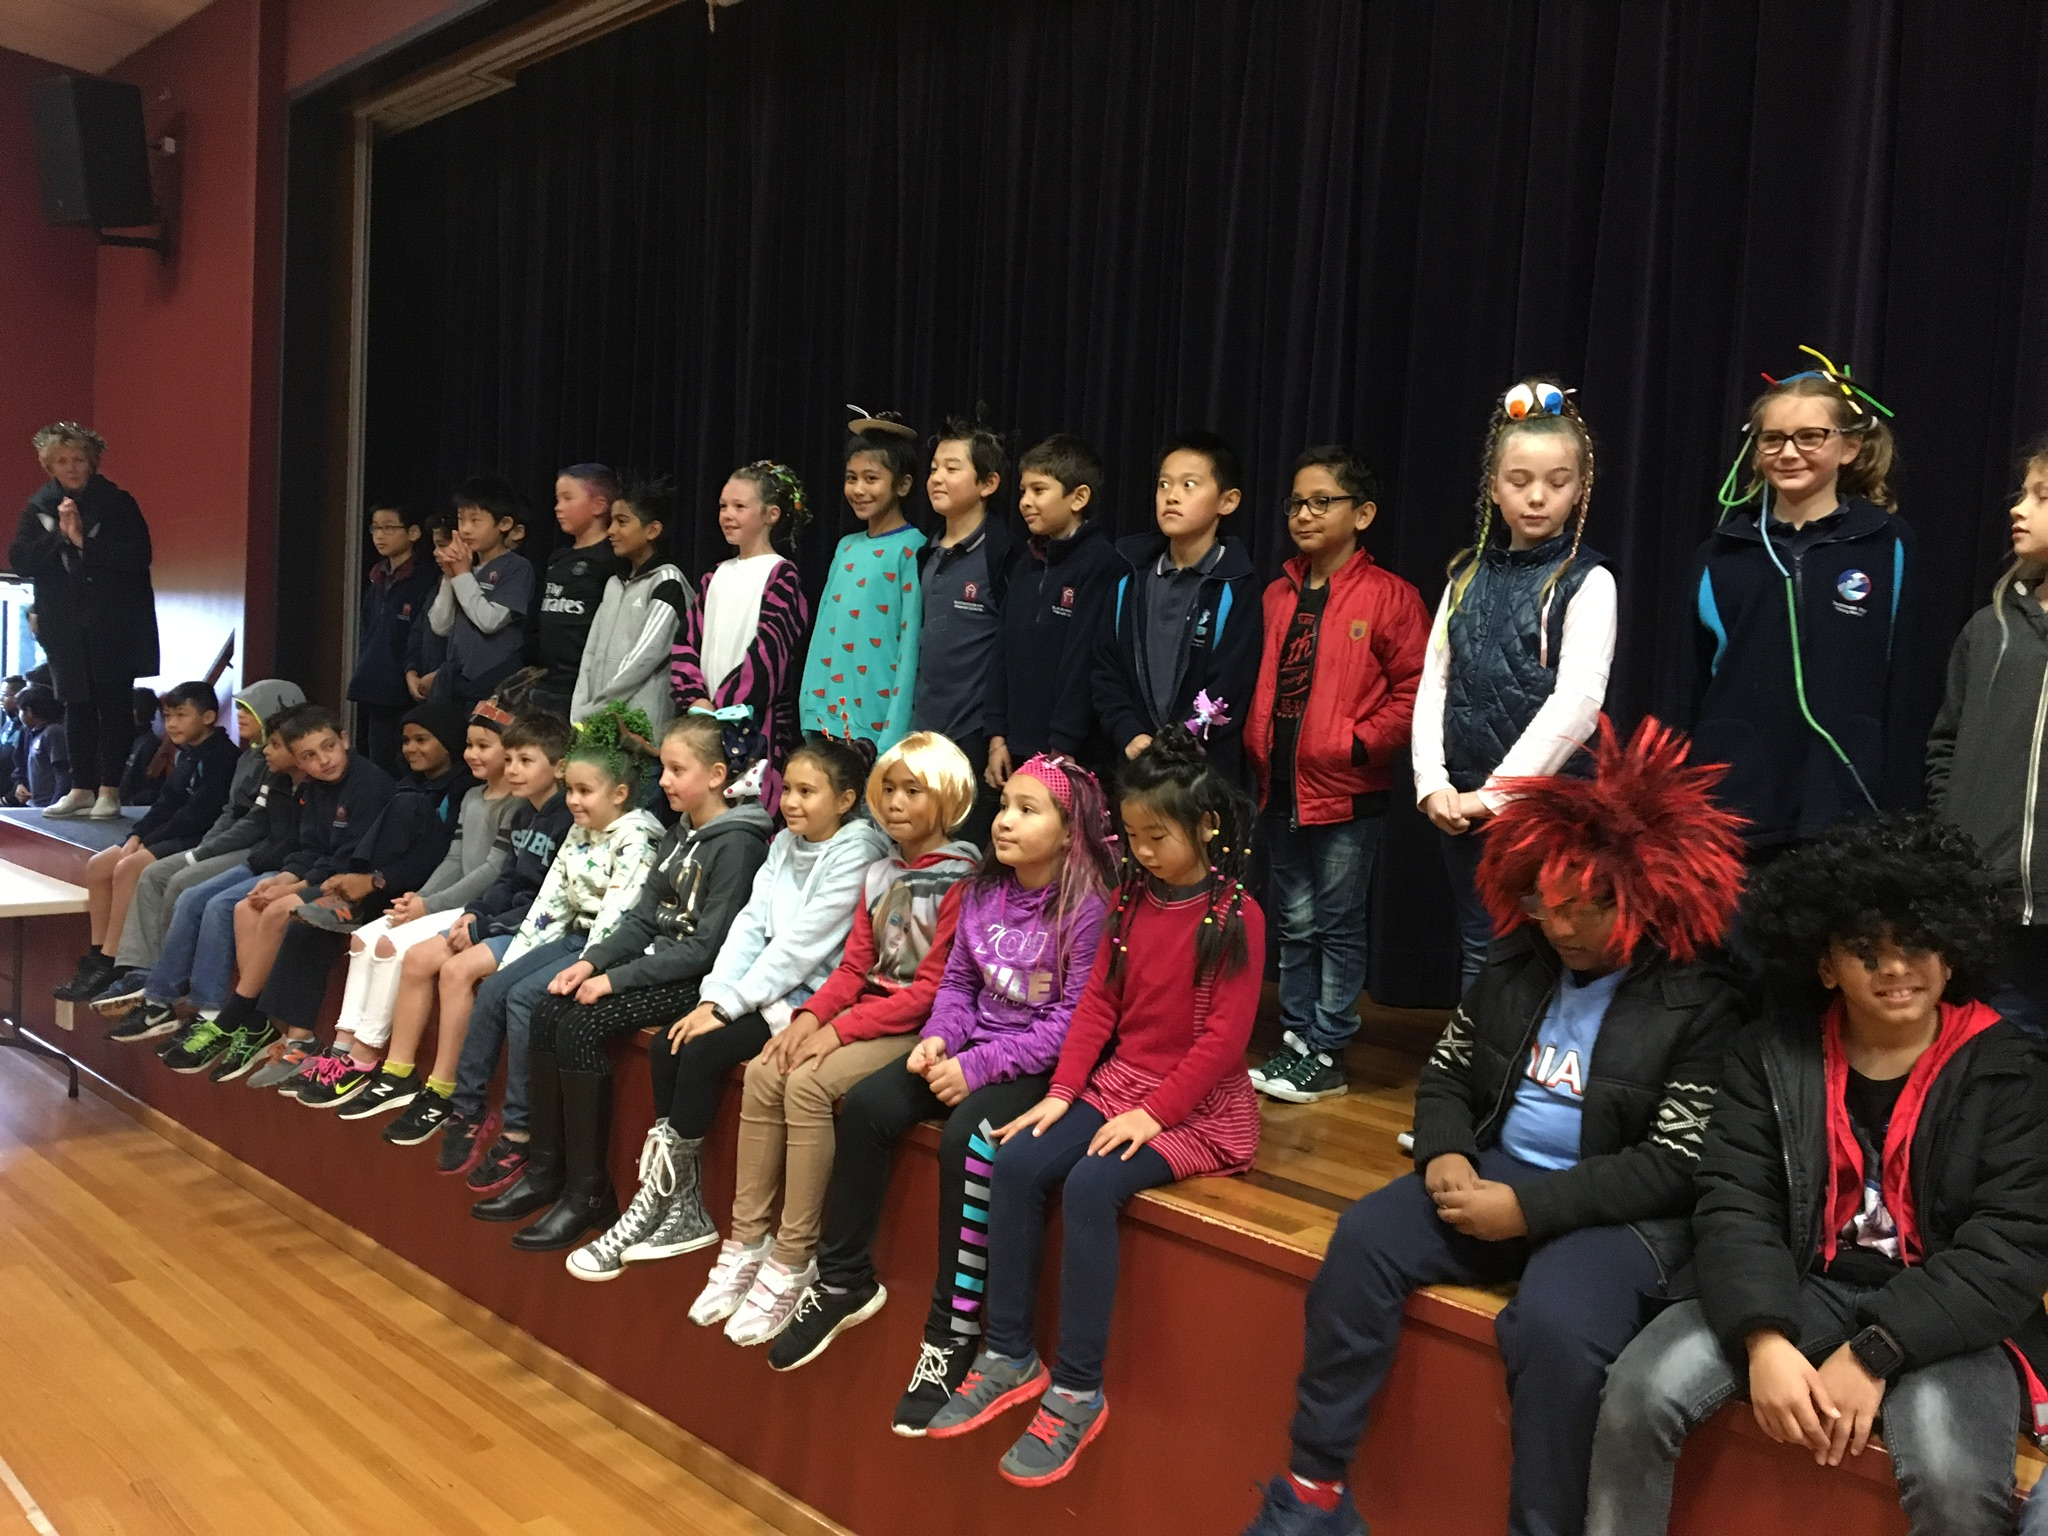 Blockhouse Bay Primary School - Room 10 Wacky hair day